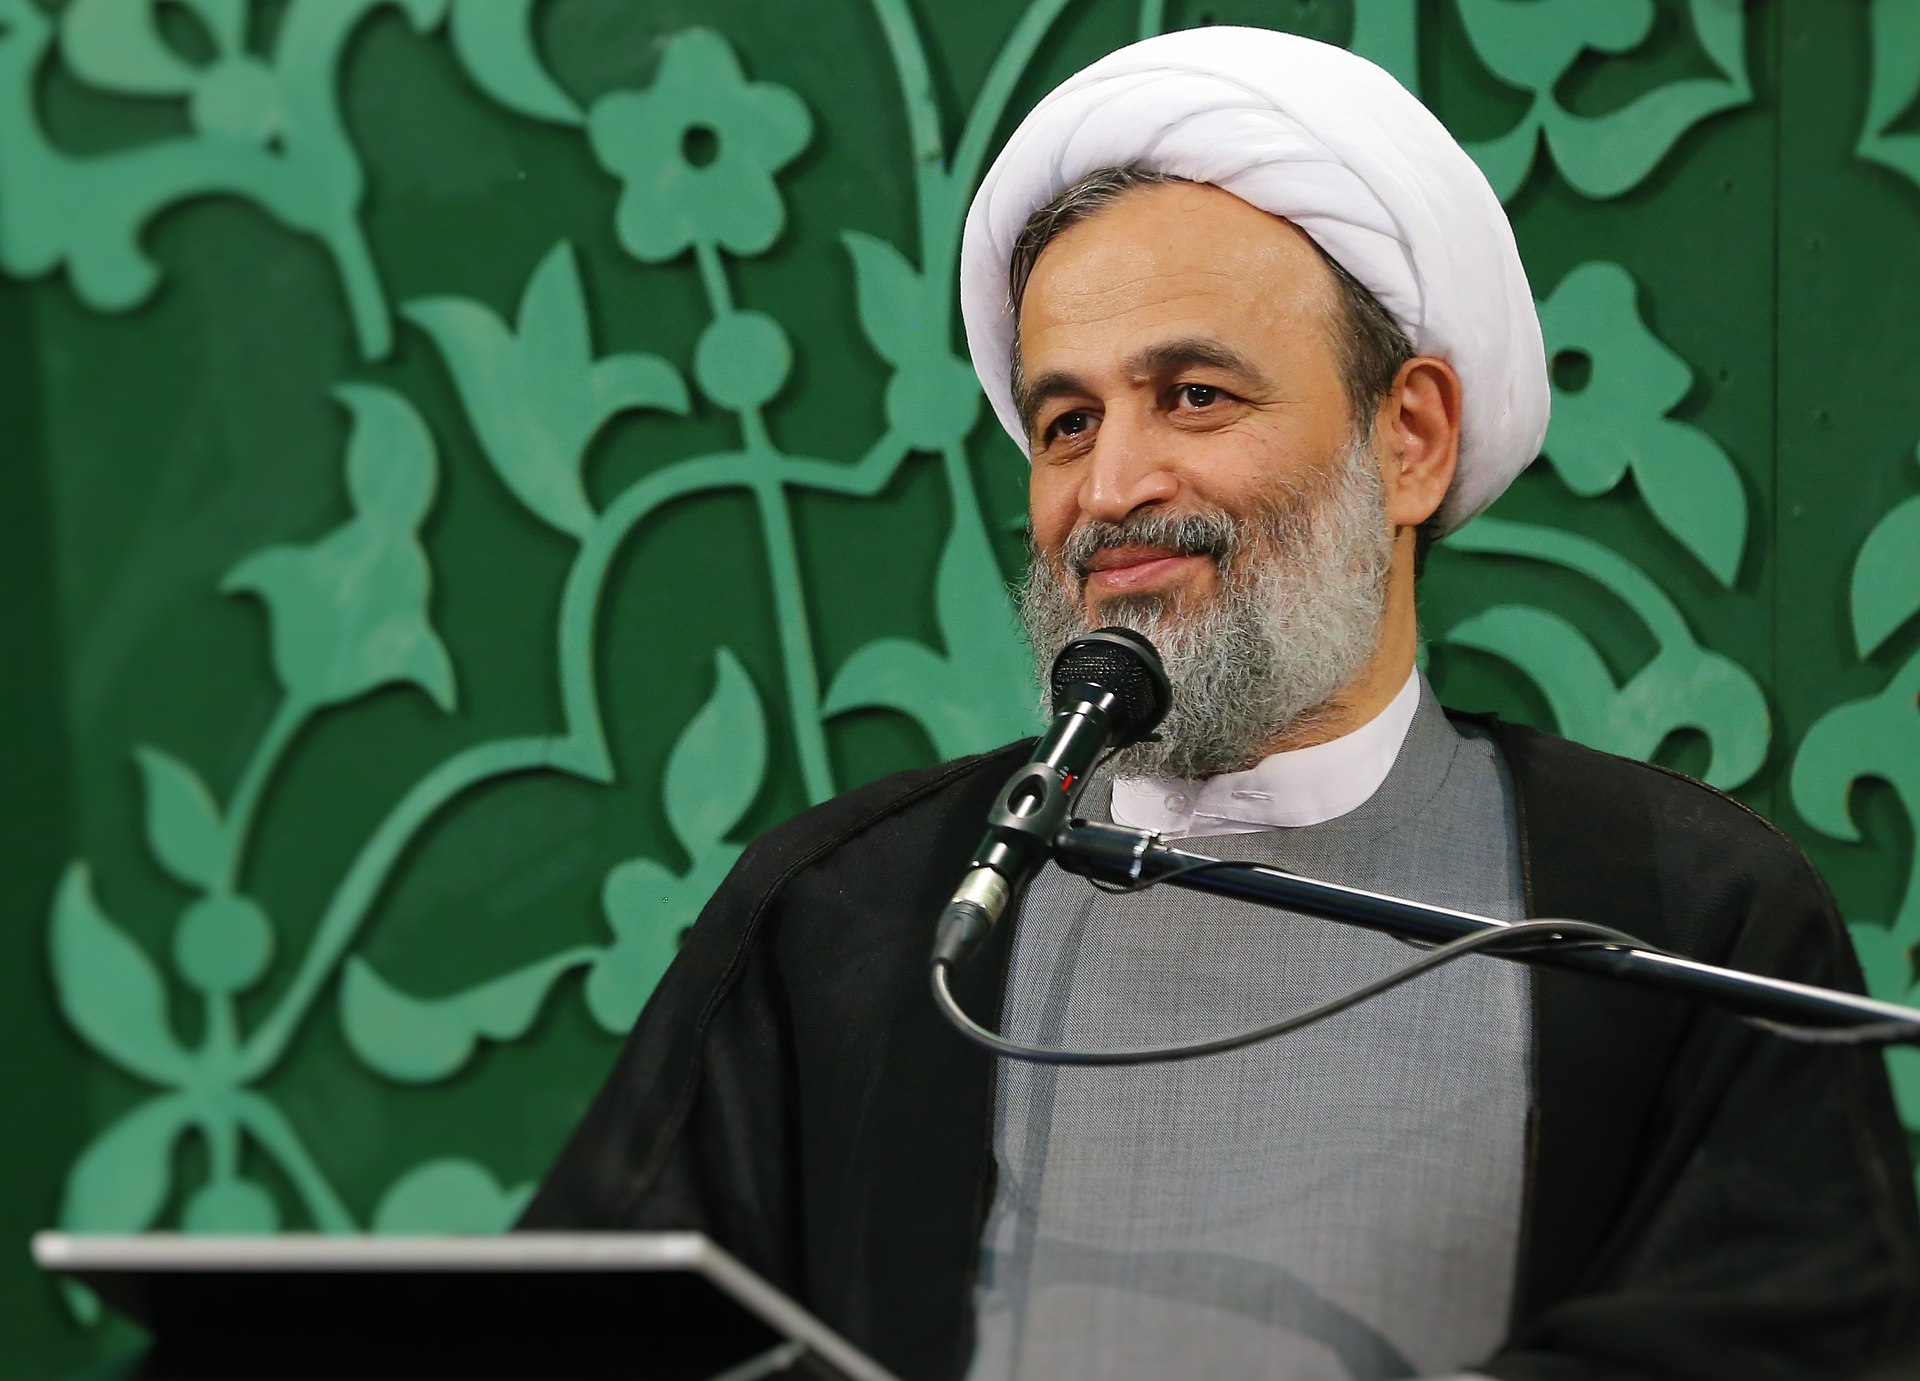 Iran warns that millions may die from COVID-19 after its Alireza Panahian calls for deliberate spreading of the disease to fulfill Islamic prophecy related to the Mahdi